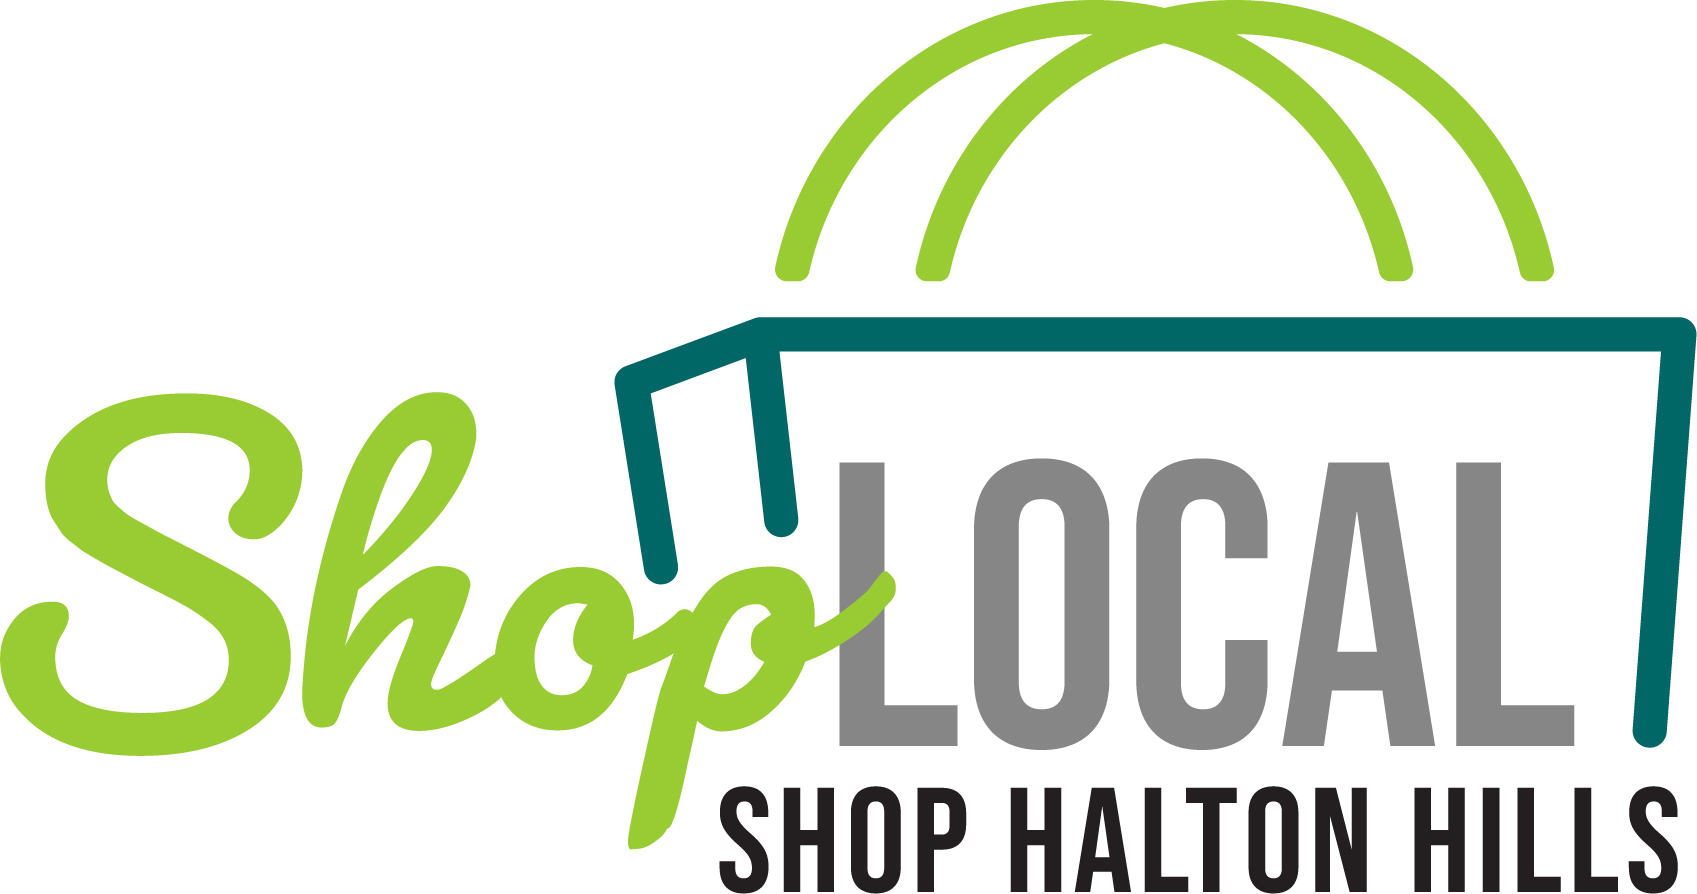 Shop Local Logo